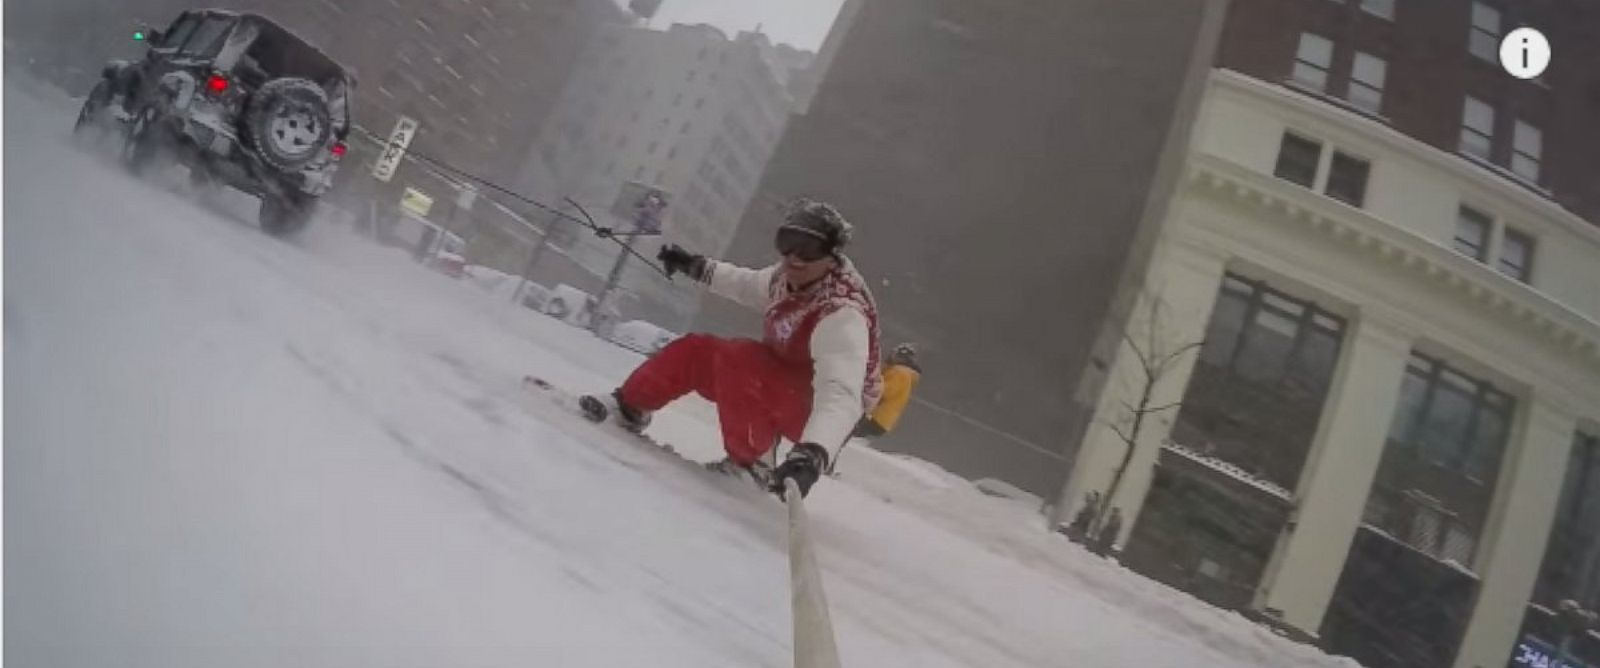 PHOTO: Casey Neistat posted this video snowboarding in New York City on his Facebook and YouTube pages.